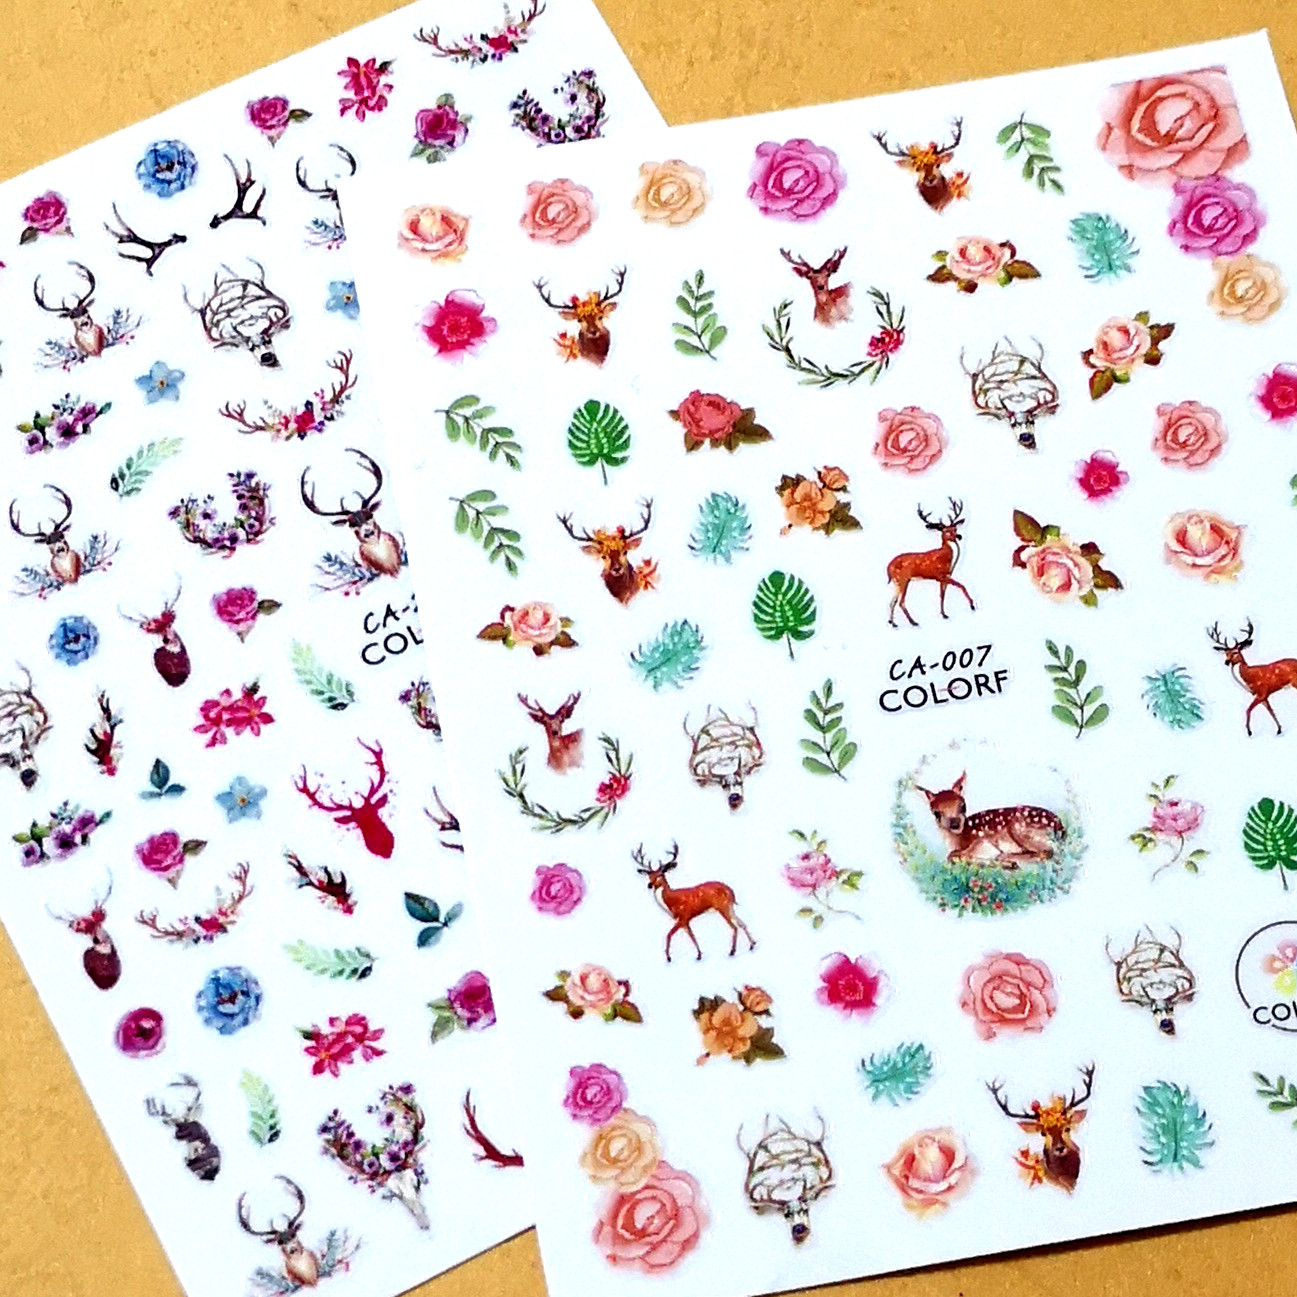 Newest CA-7 270 flowers and deer design 3d sticker nail decal stamping Japan type DIY nail manicure decorations stamping